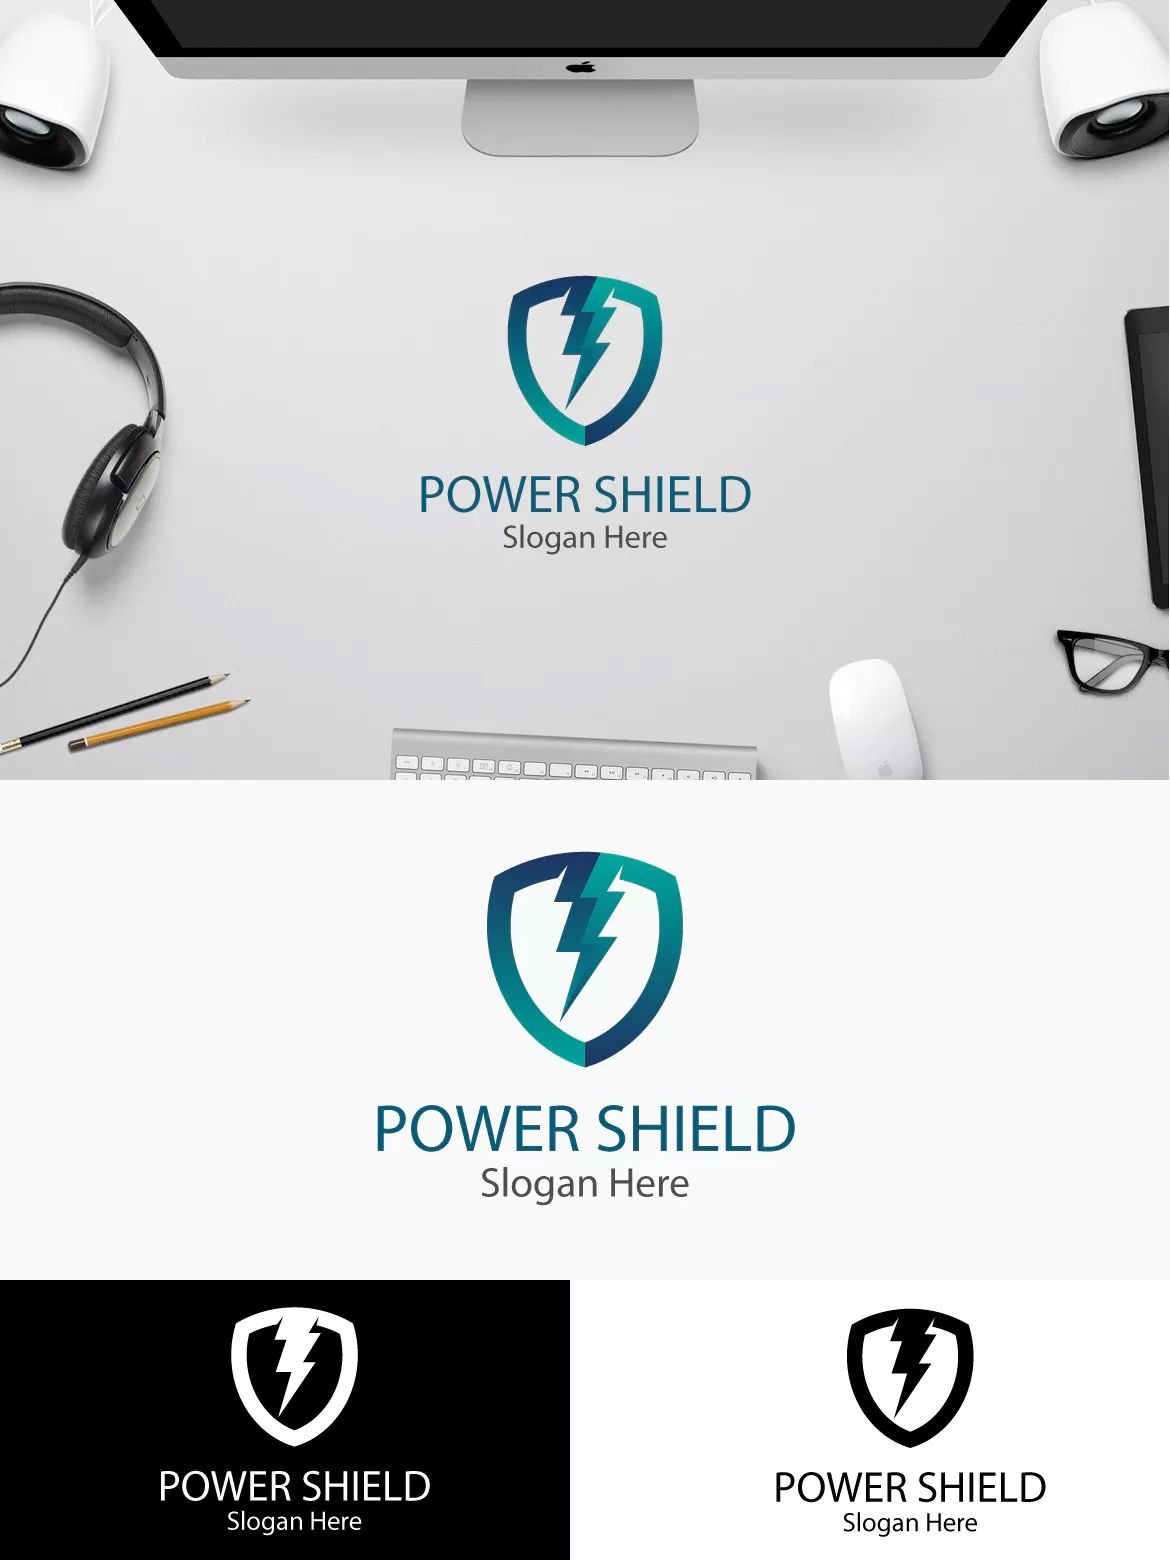 Power shield logo template ai psd logo templates pinterest power shield logo template ai psd maxwellsz